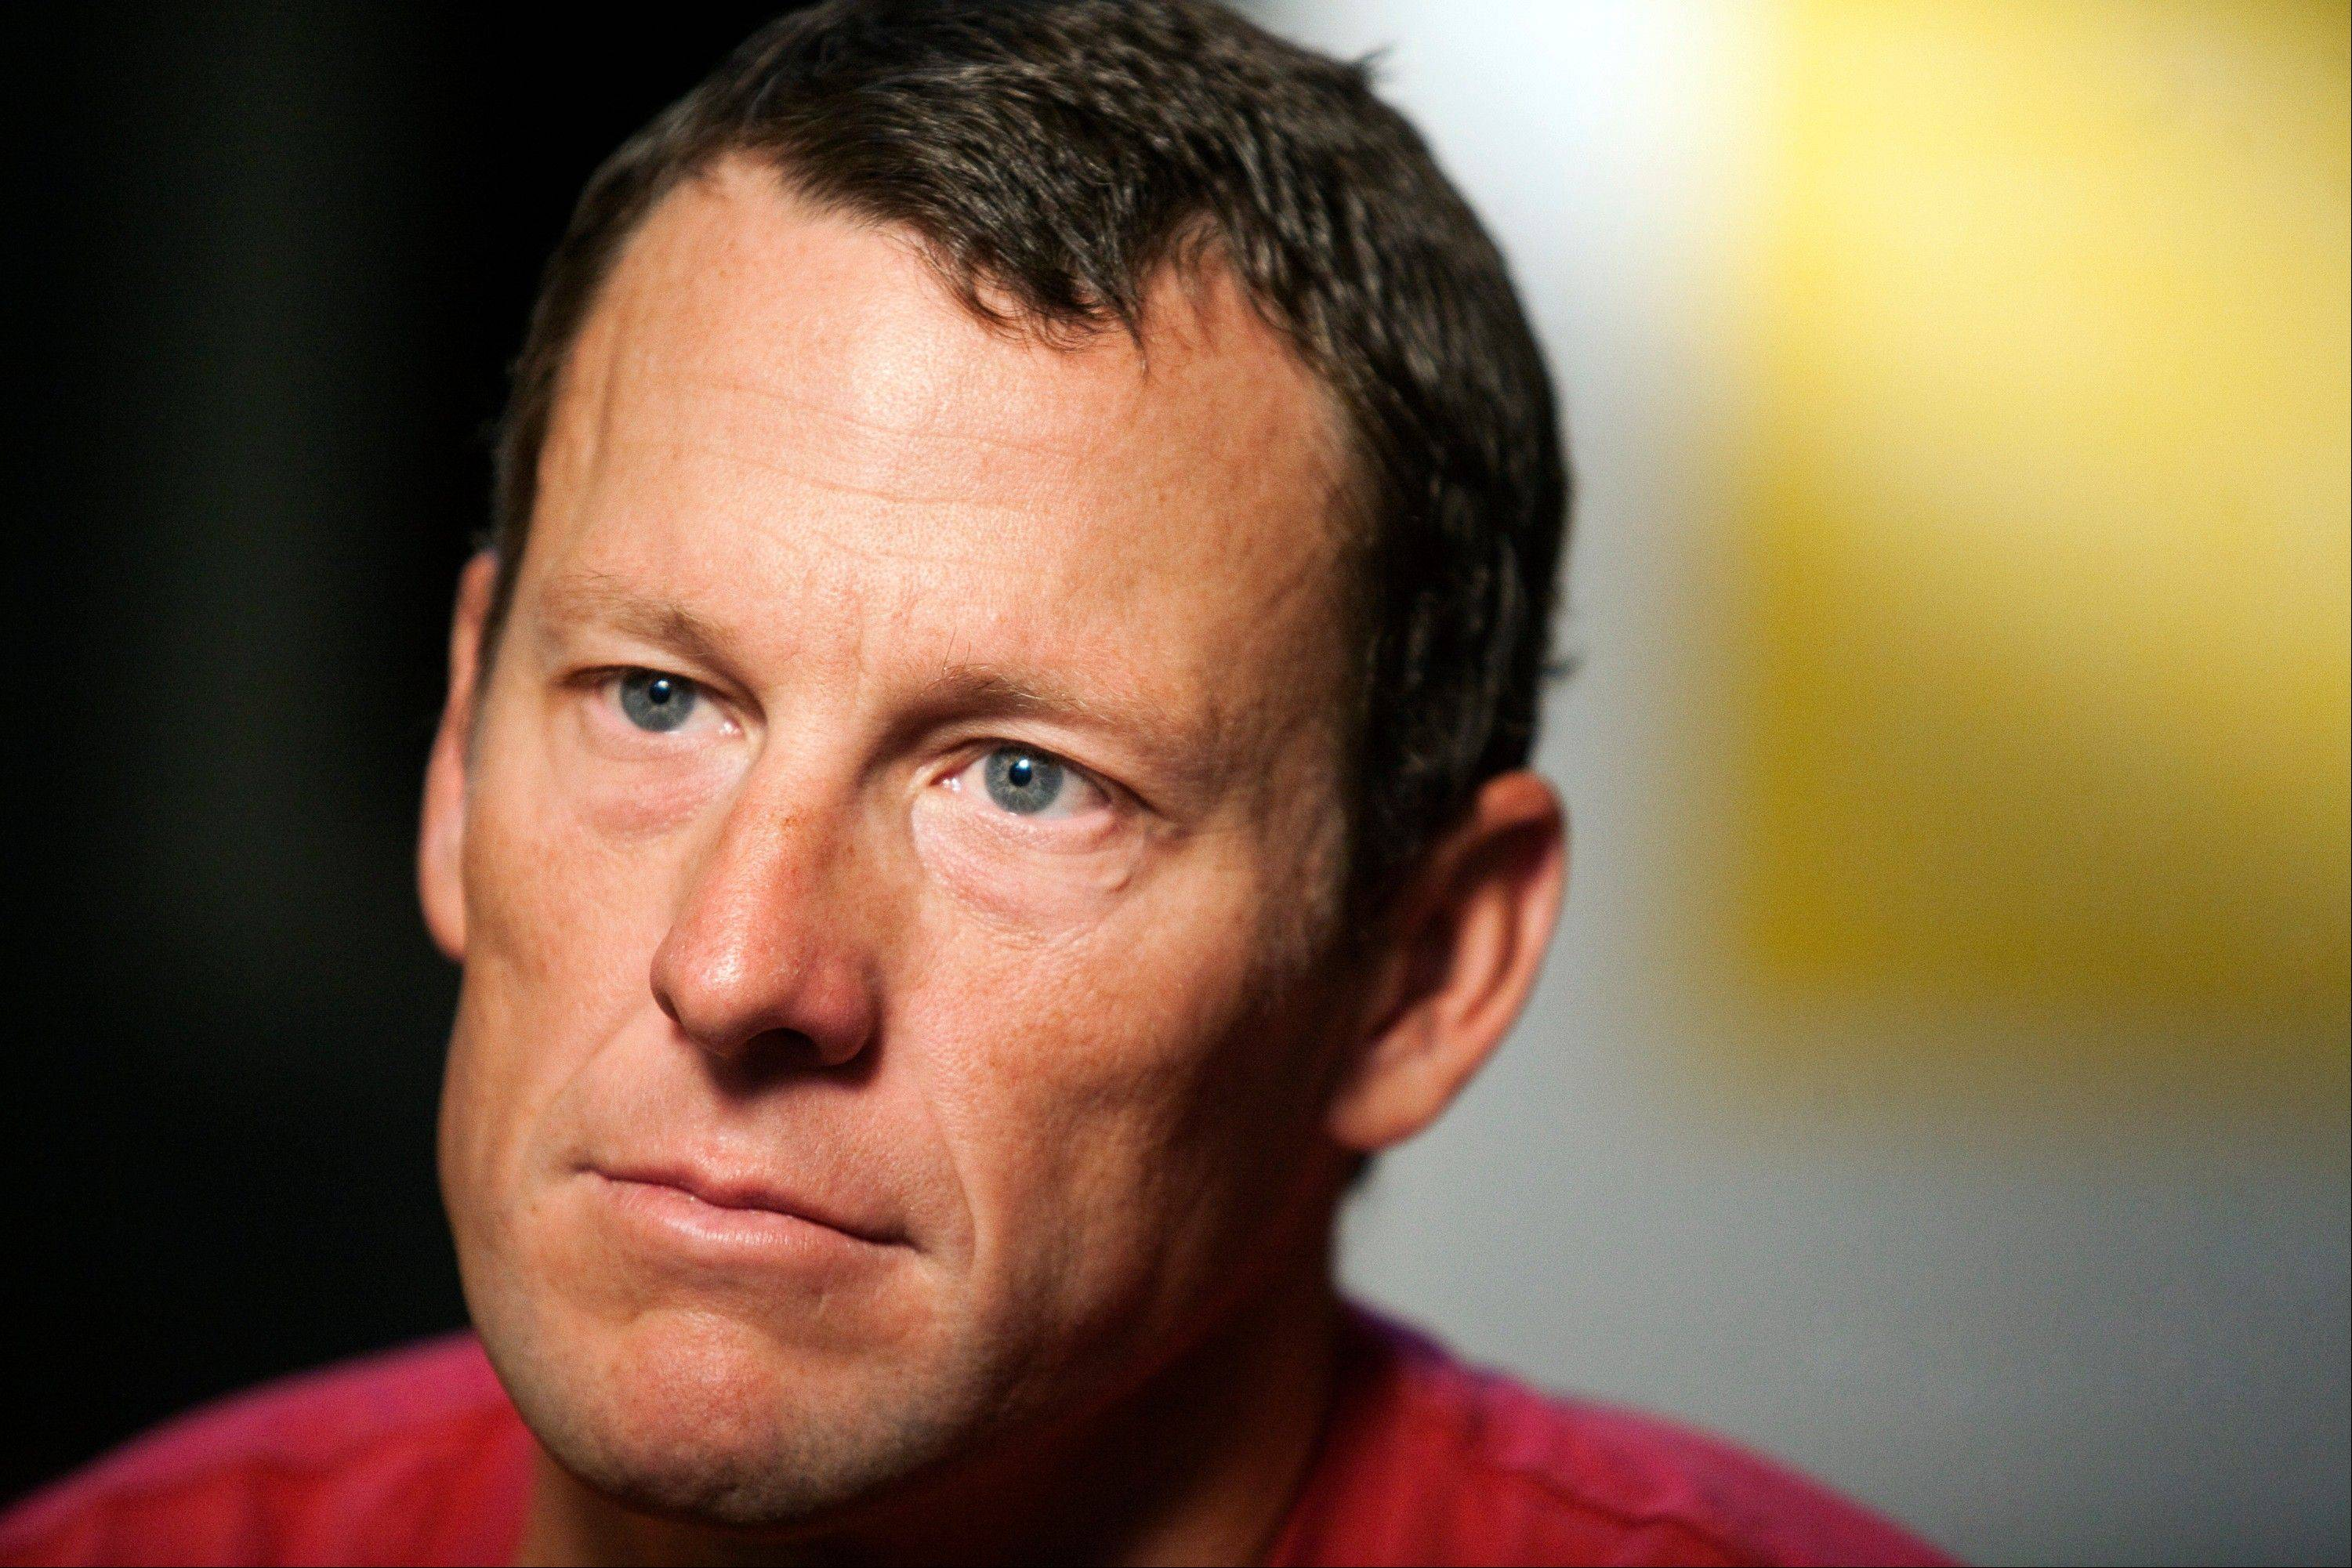 A Texas judge is pushing Lance Armstrong closer to his first sworn testimony on details of his performance-enhancing drug use, ordering the cyclist to answer questions about who knew what and when about his doping, including possibly his ex-wife and his attorneys. Nebraska-based Acceptance Insurance Holding is seeking the information in its lawsuit to recover $3 million in bonuses it paid Armstrong from 1999 to 2001.